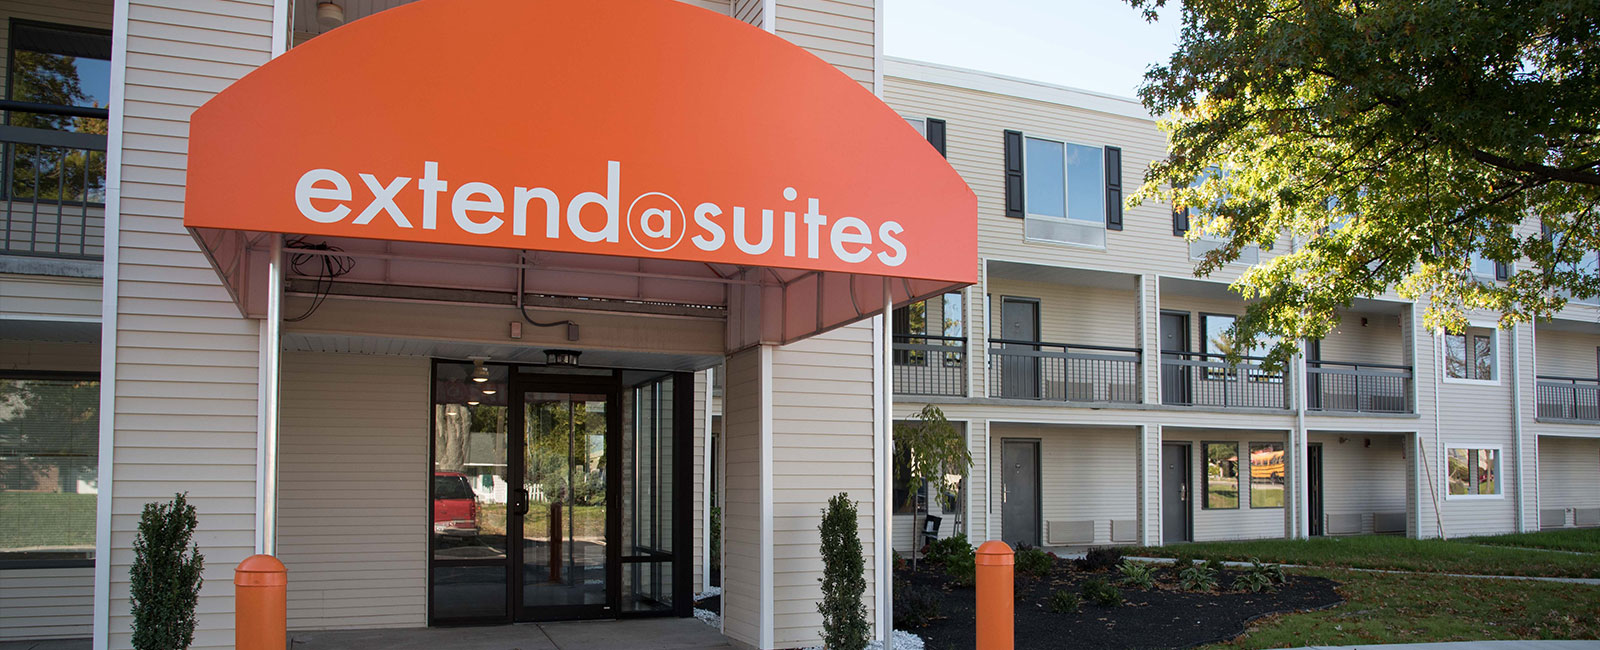 Licensing Opportunities -Extend-a-Suites